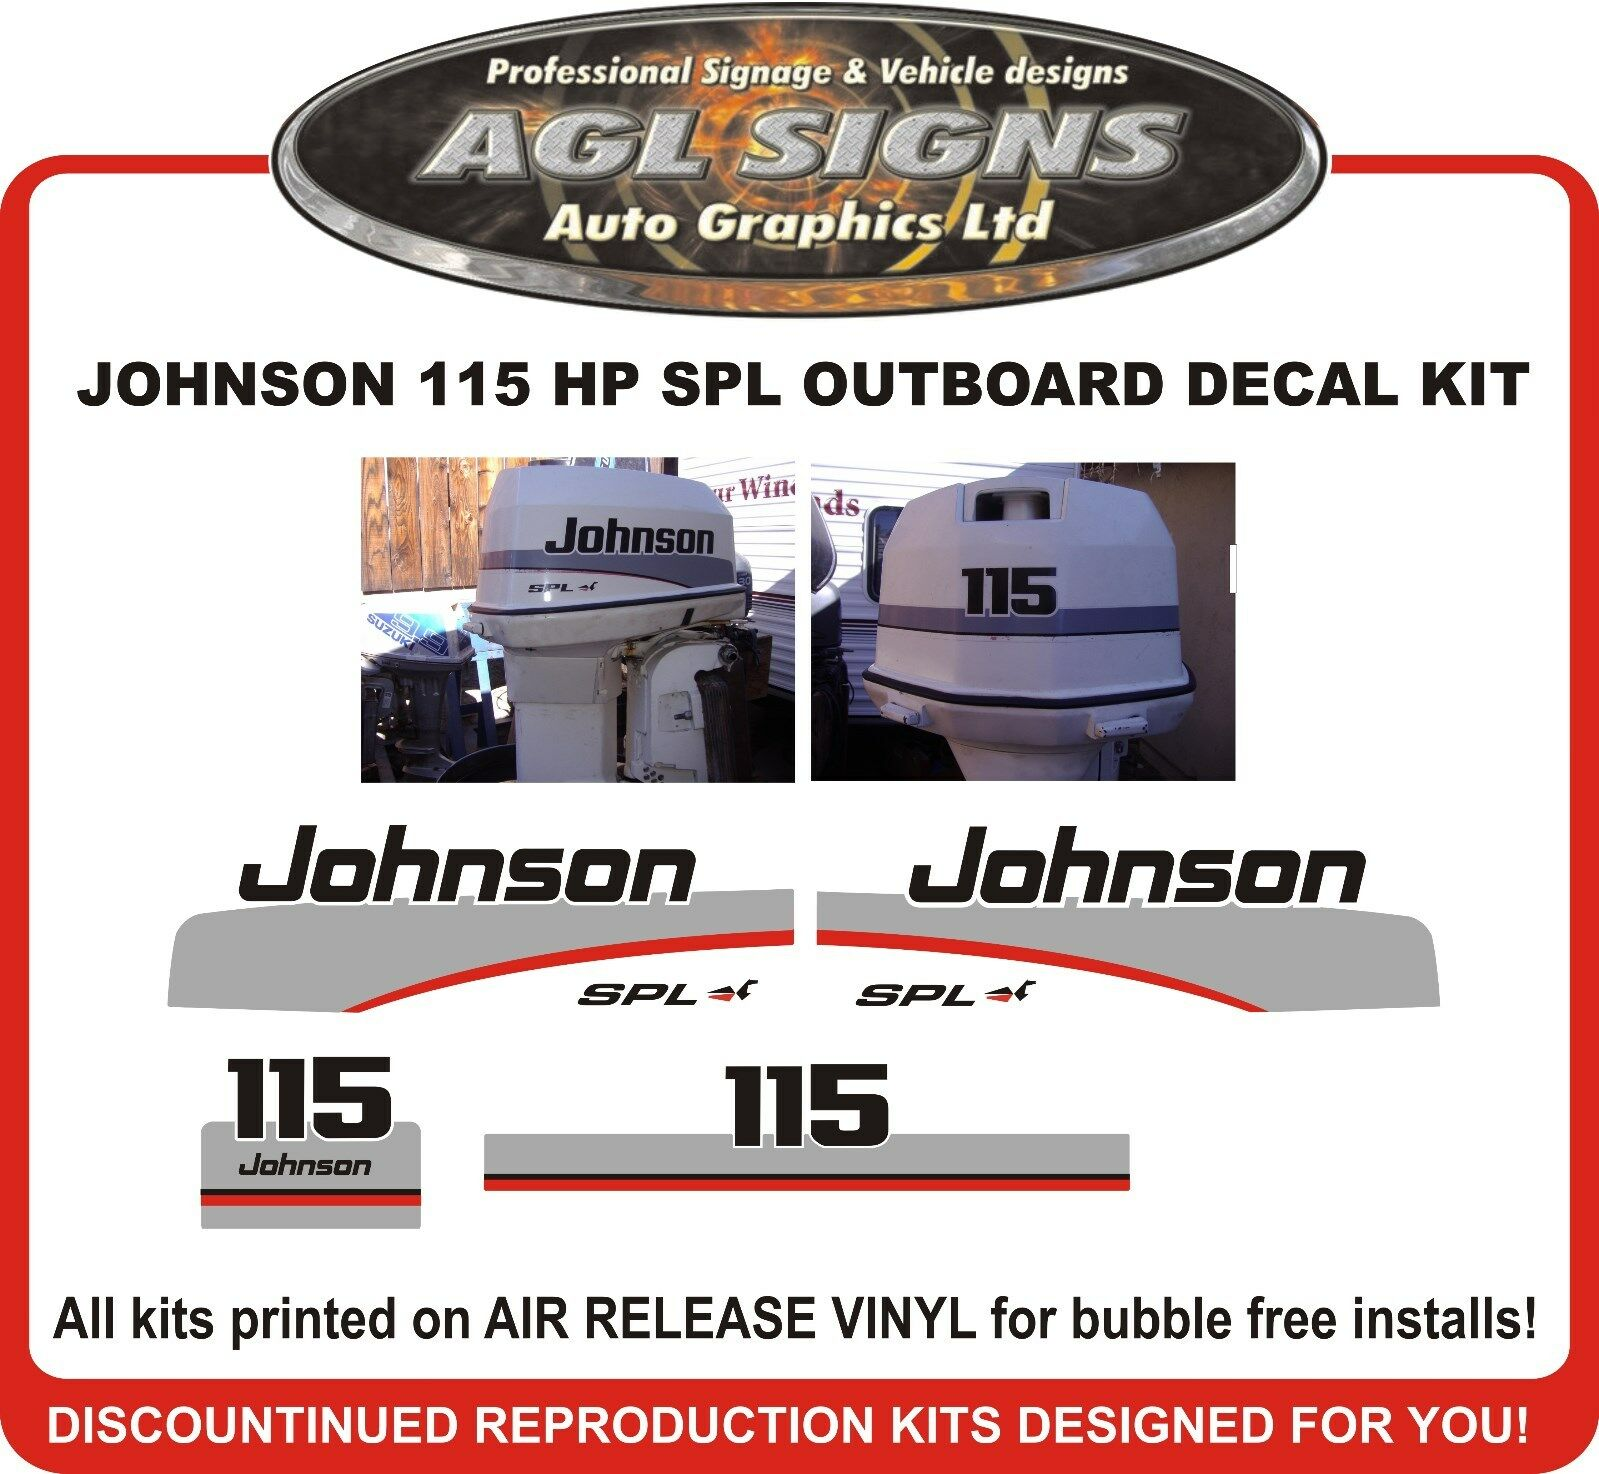 1997 1998 JOHNSON 115 HP SPL Outboard Decal kit reproductions also 90 hp 1  of 1 See More